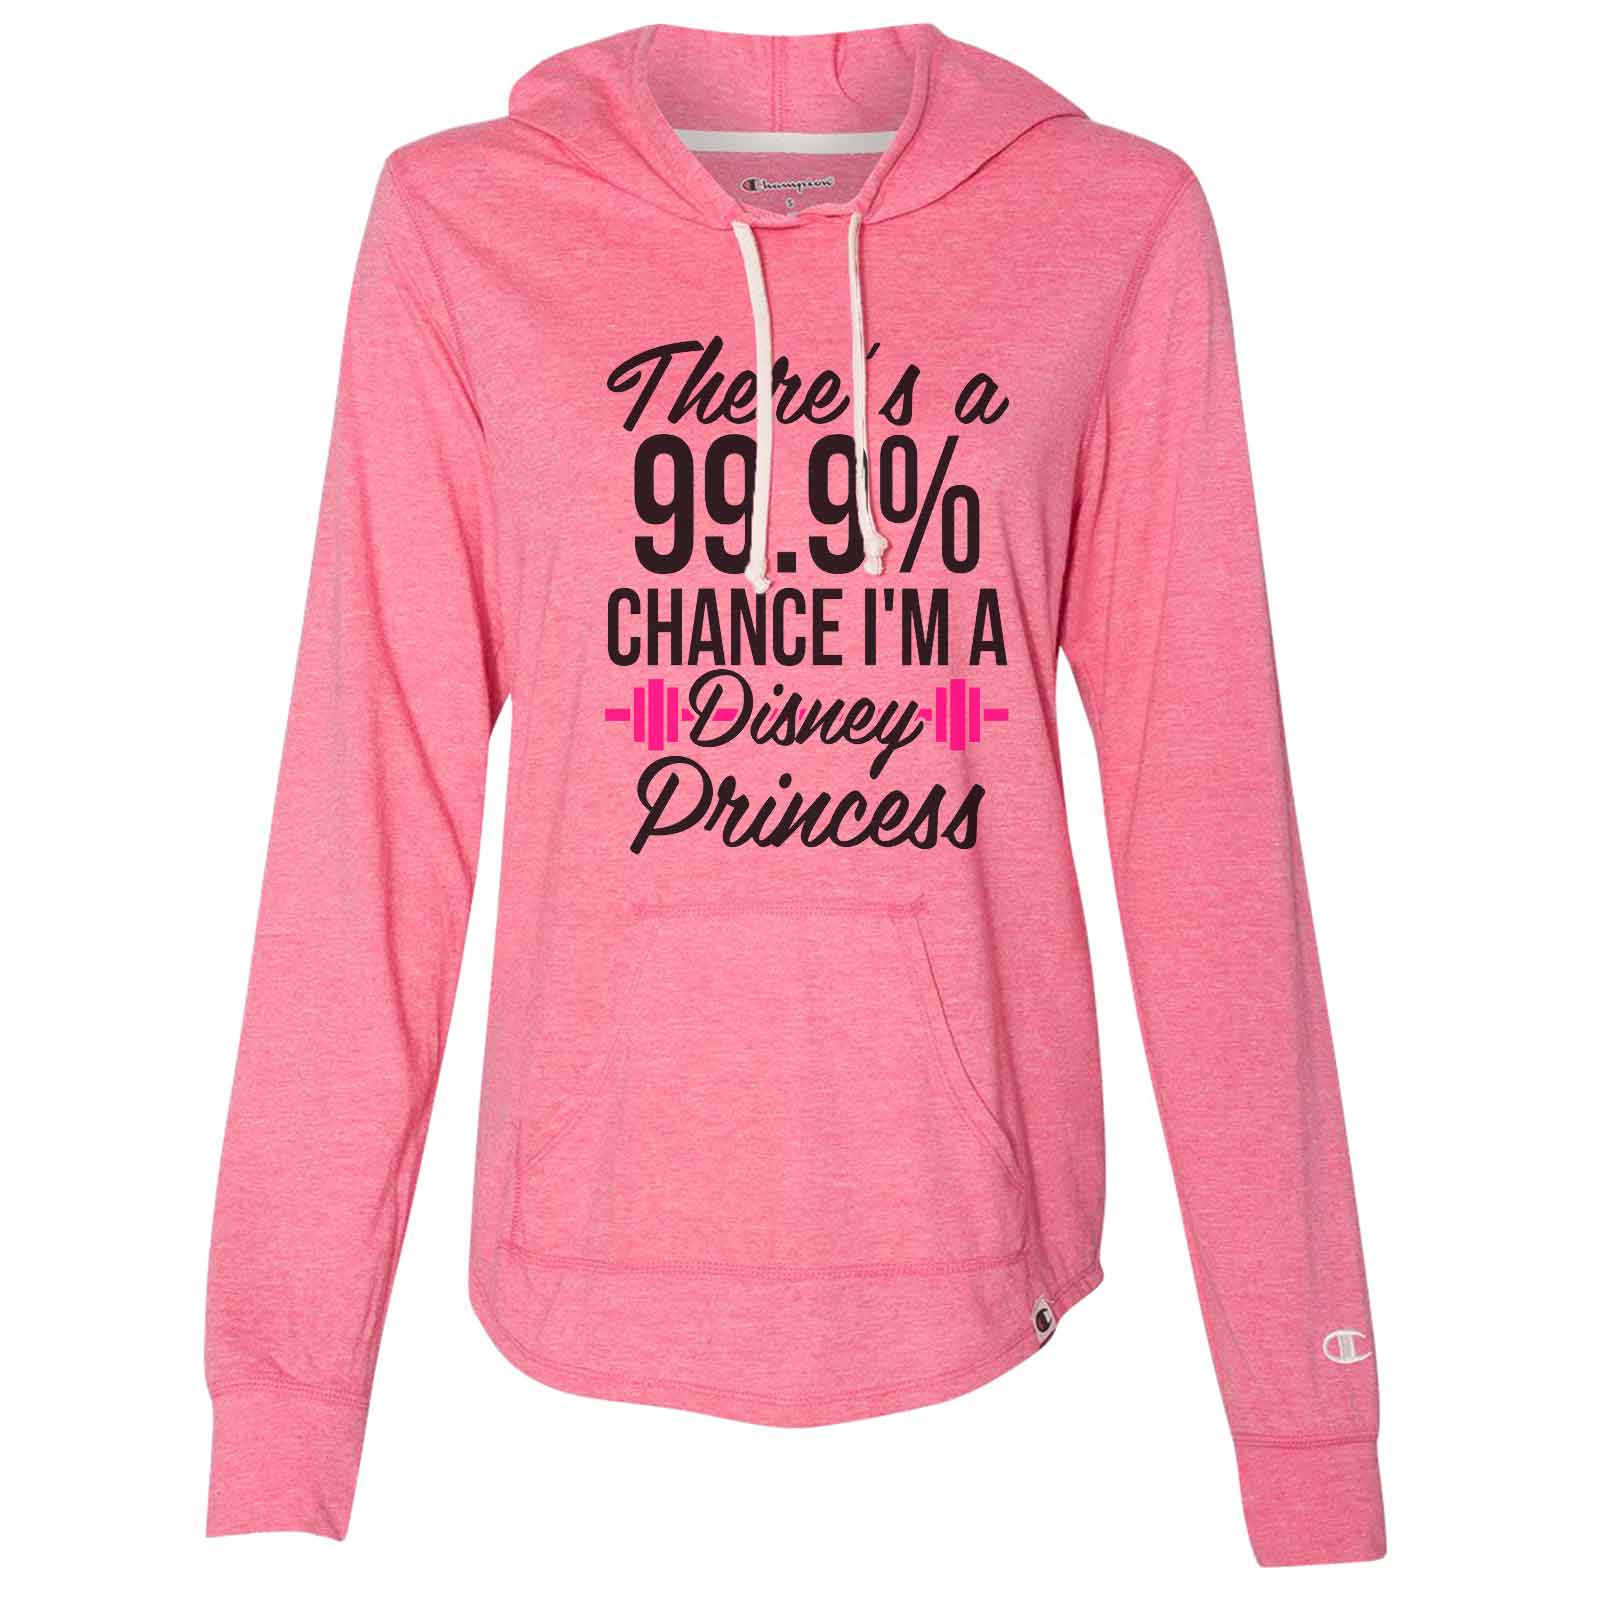 "Funny Women's Disney Champion Hoodie ""There's A 99.9 Chance I'm A Disney Princess"" Light Weight Sweatshirt Large, Blue"